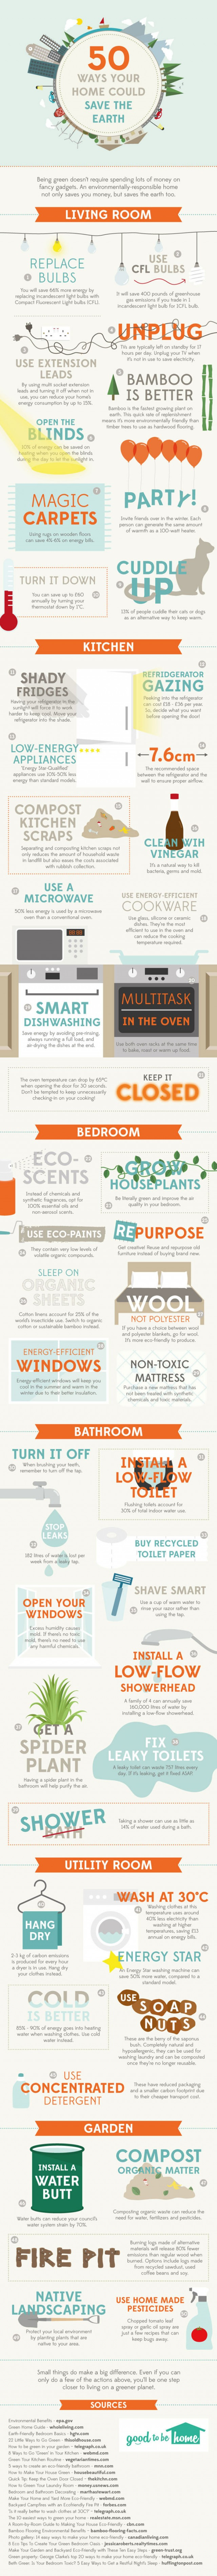 Save the Earth infographic